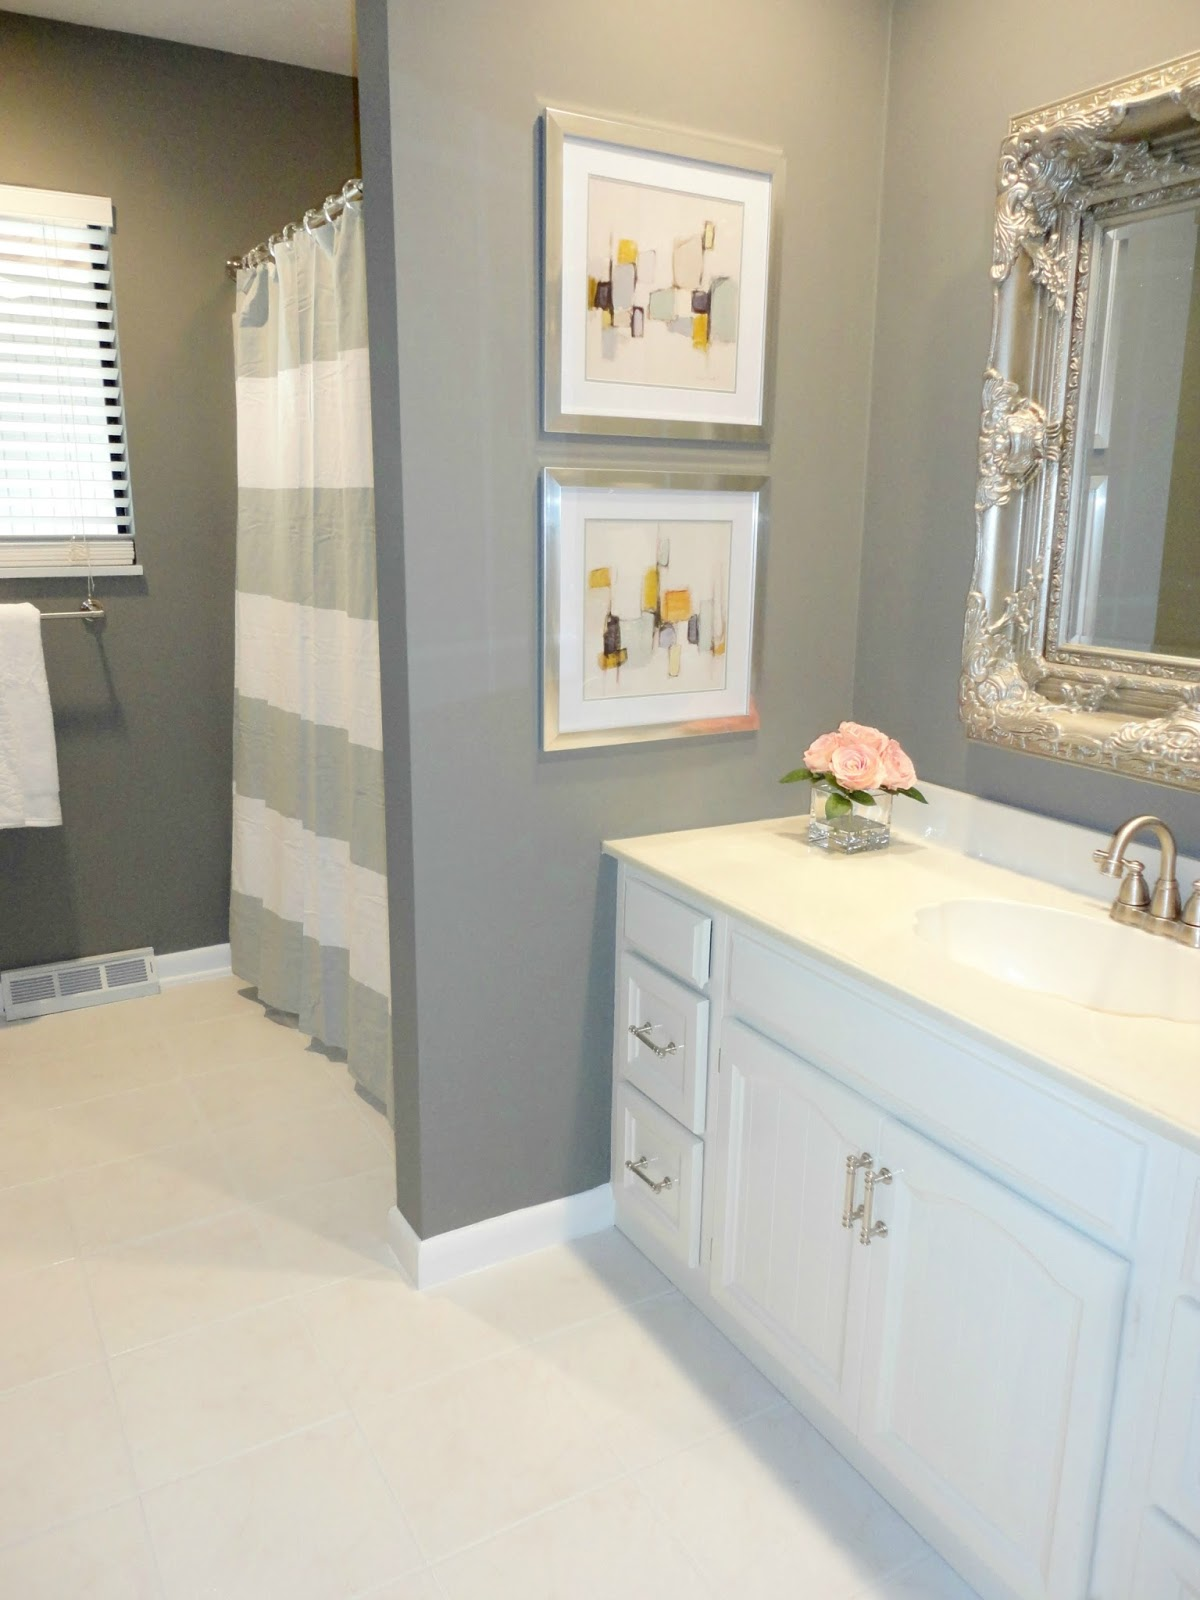 Epic DIY Bathroom Remodel on a Budget